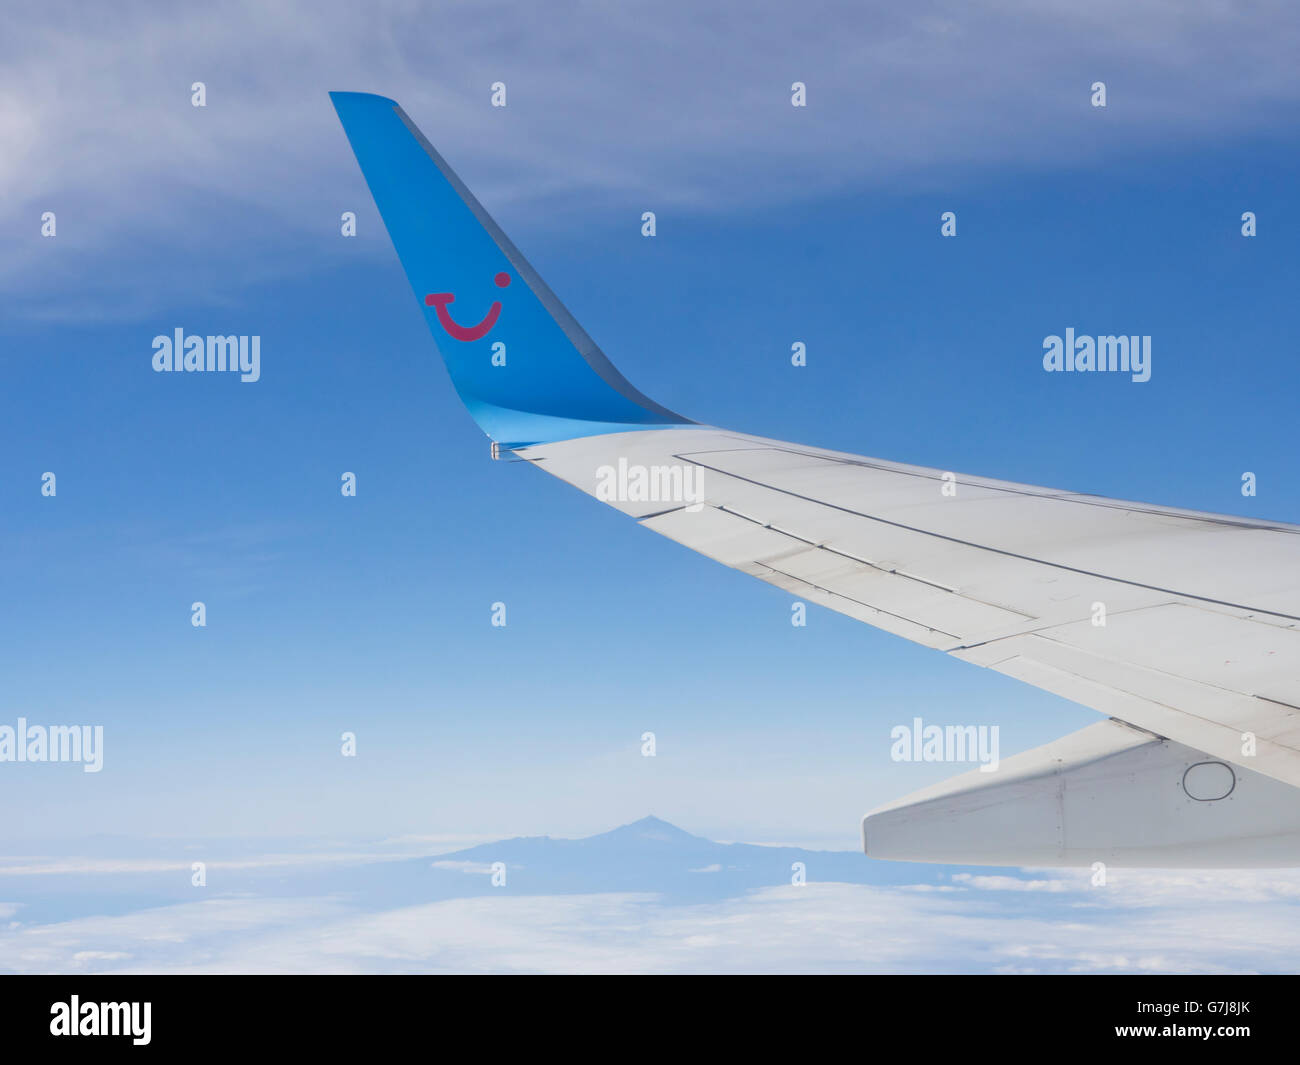 Blended winglet on a Boing airplane, smiling TUI logo in blue and red, taking passengers to or from Tenerife seen - Stock Image